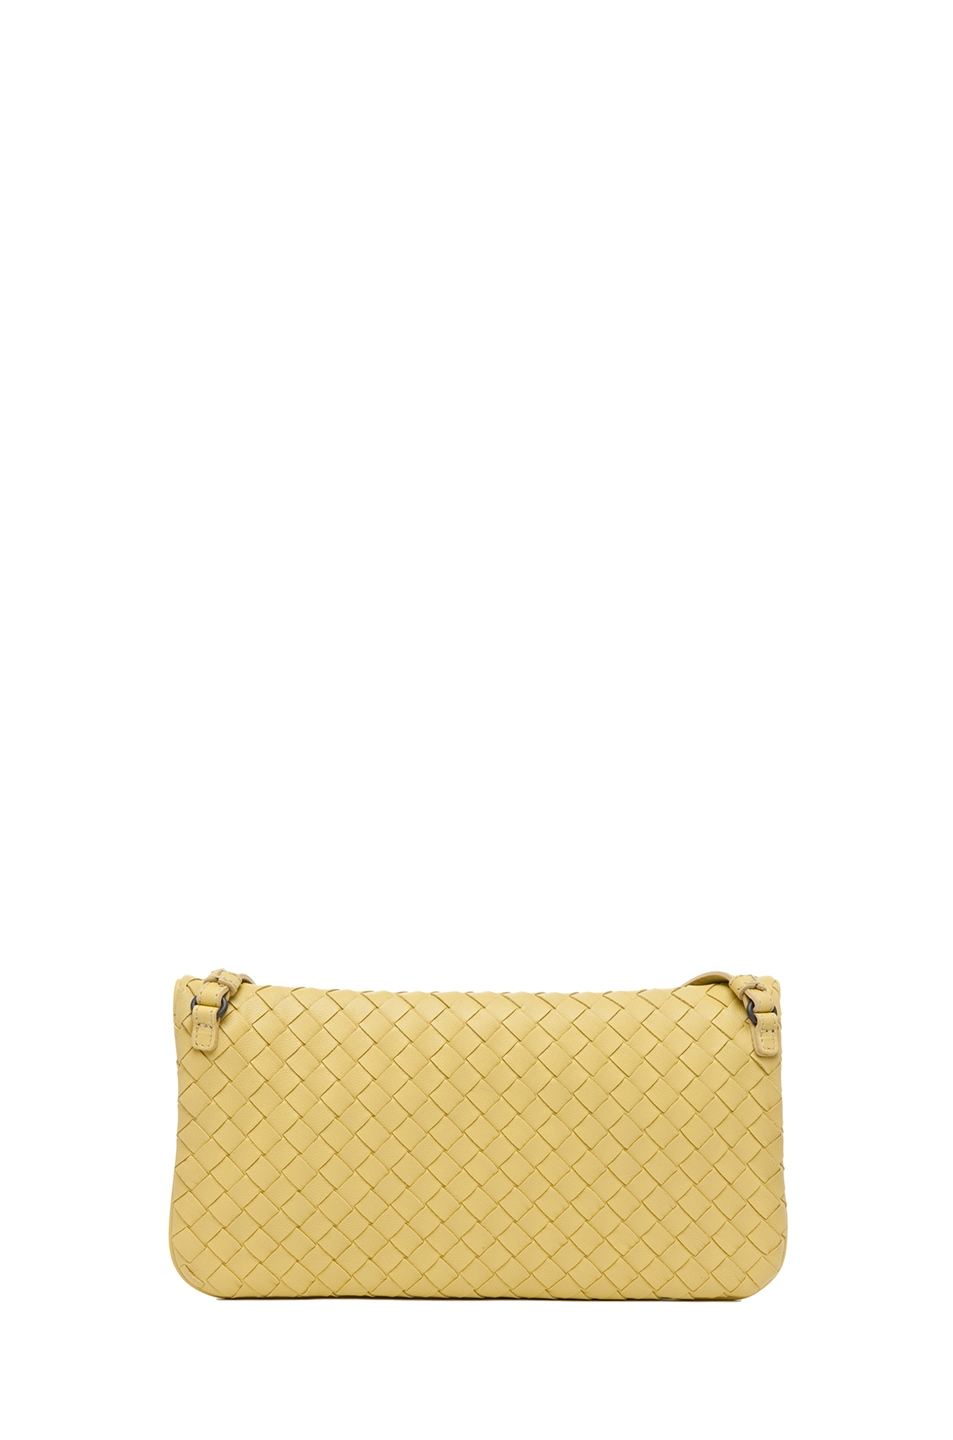 Image 2 of Bottega Veneta Crossbody Bag in Citrus Yellow